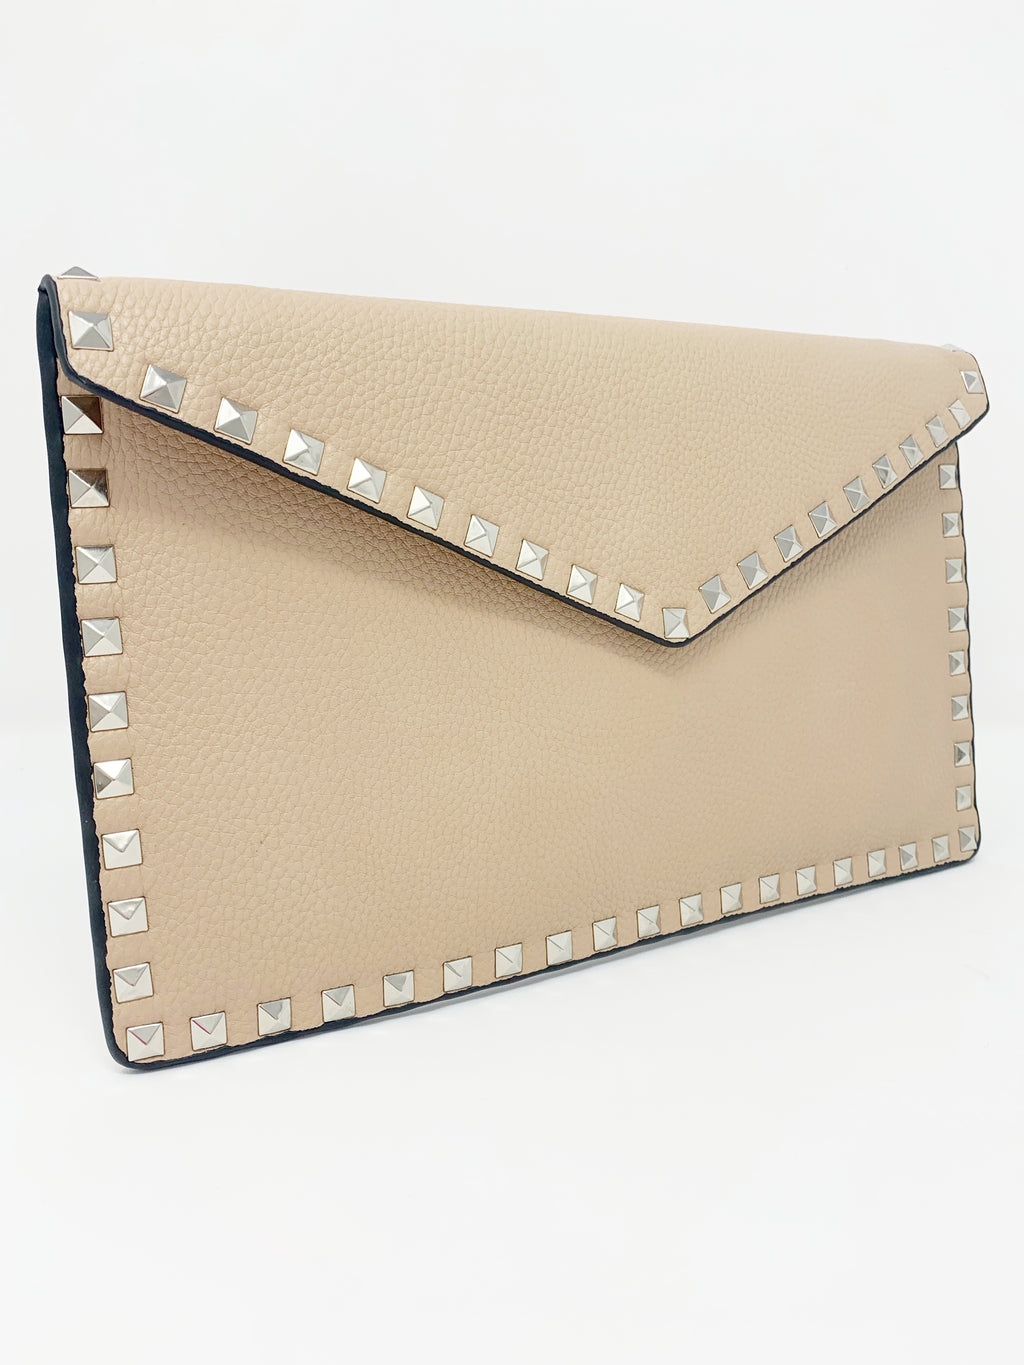 Studded Envelope Clutch in Nude